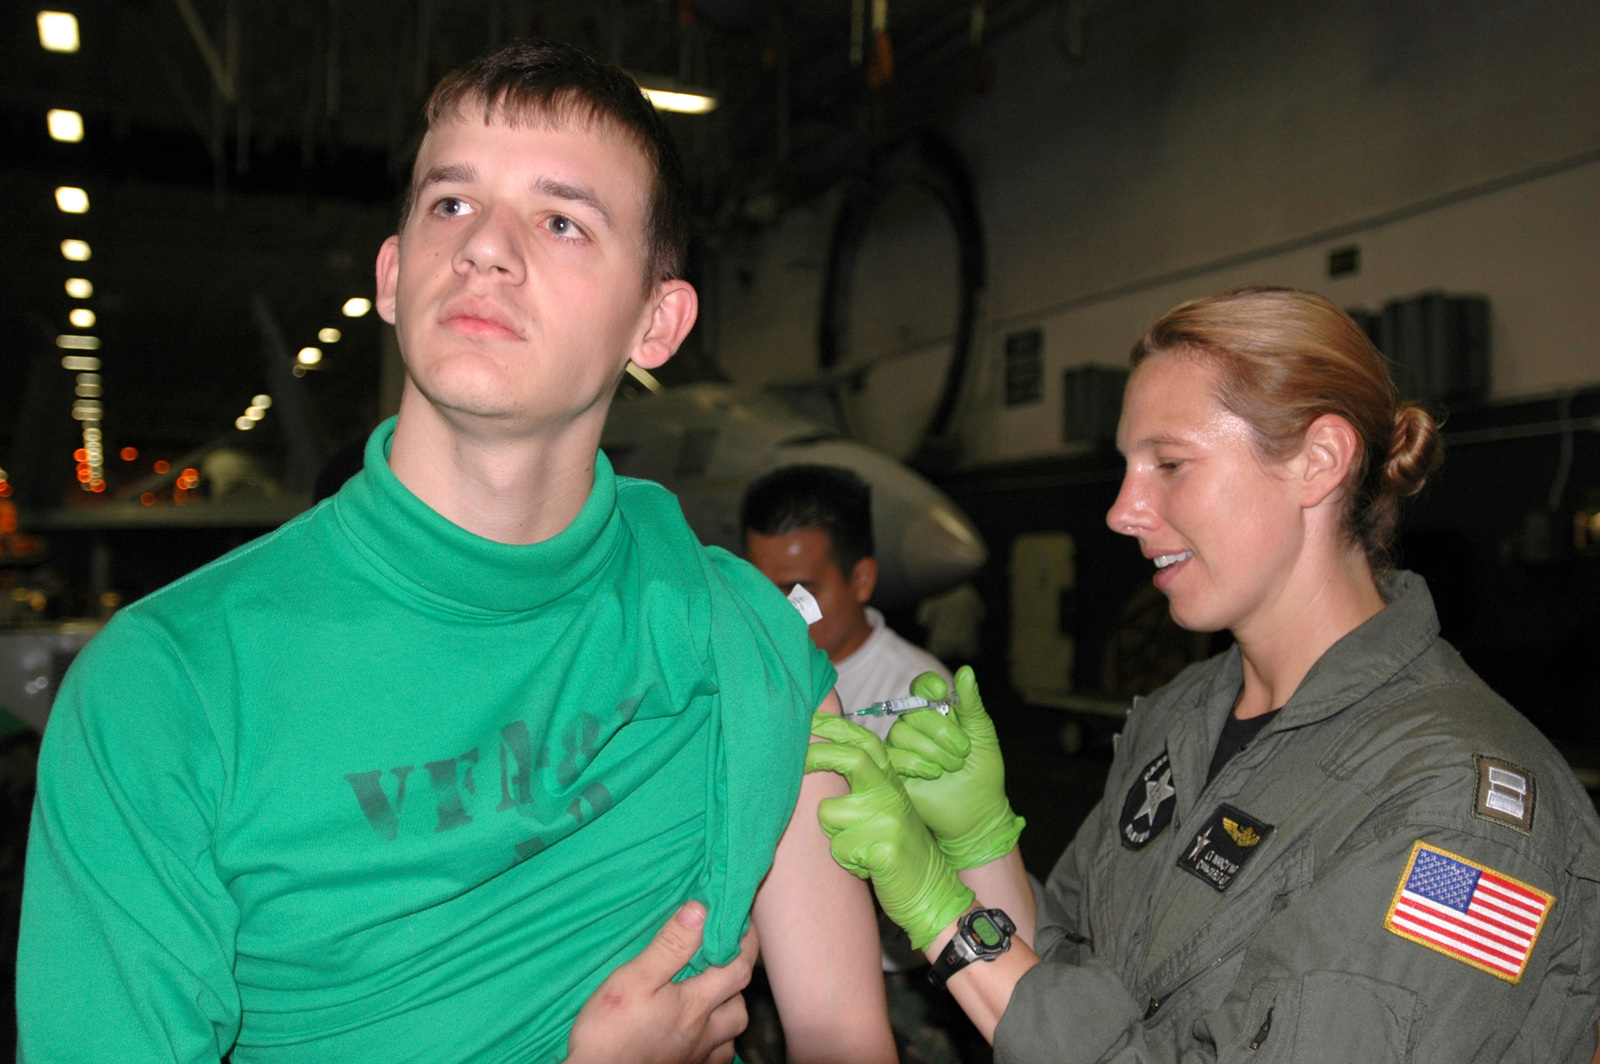 """U.S. Navy Aviation Maintenance Administrationman 3rd Class Joshua Hardin (left) assigned to the""""Sunliners""""of Strike Fighter Squadron 81, receives an Influenza vaccination from LT. Nancy Warner (right) assigned to Carrier Air Wing 11 in the hangar bay aboard the Aircraft Carrier USS NIMITZ (CVN 68) off the coast of Calif., Oct. 26, 2006. (U.S. Navy photo by Mass Communication SPECIALIST SEAMAN Gretchen Marie Roth) (Released))"""